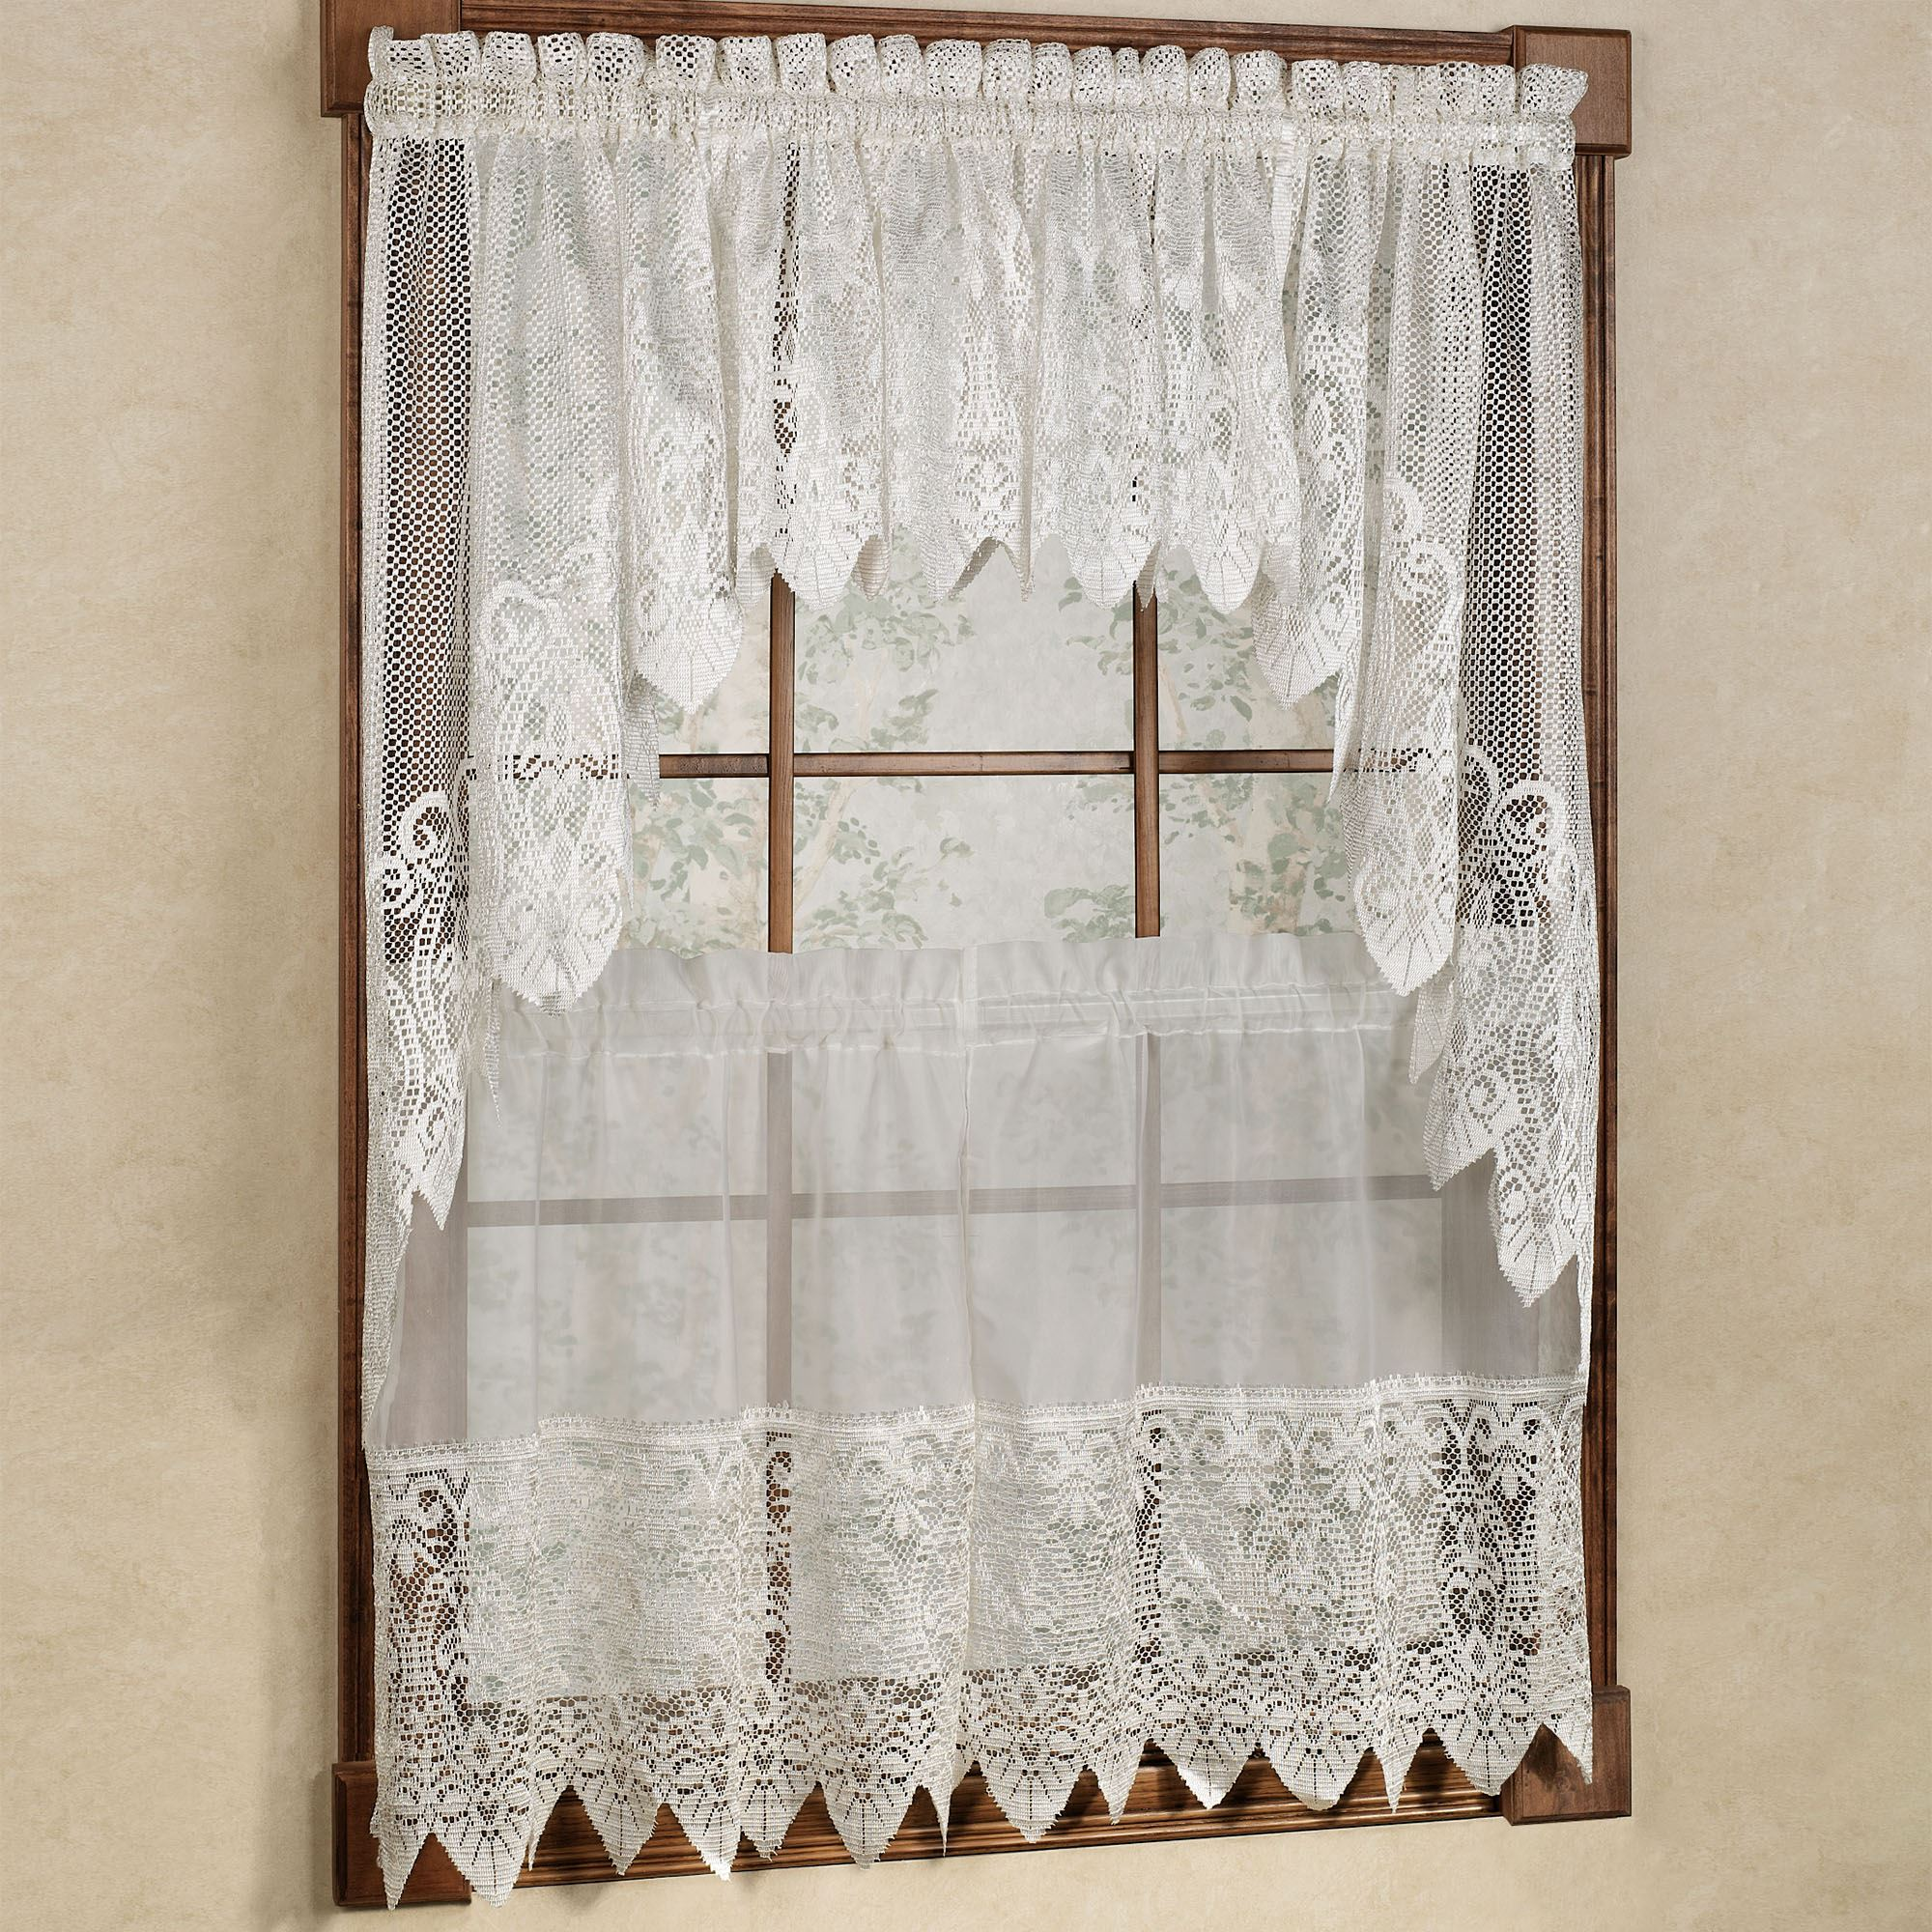 Well-liked Valerie Macrame Sheer Tier Window Treatment ZQ45